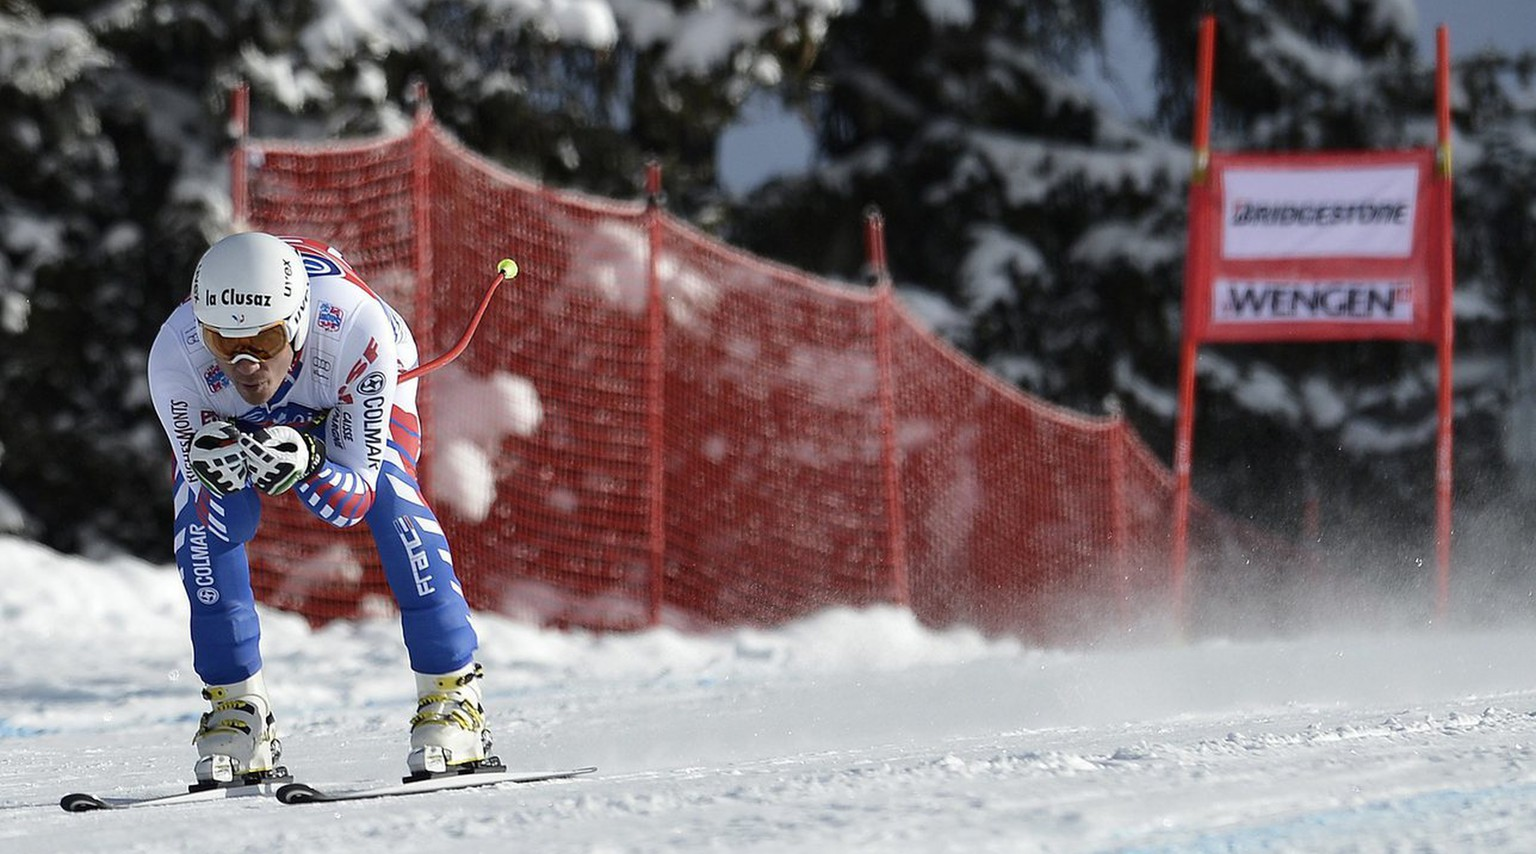 Johan Clarey of France in action during the second downhill training at the FIS Ski World Cup at the Lauberhorn in Wengen, Switzerland, Wednesday, January 16, 2013. (KEYSTONE/Peter Schneider)